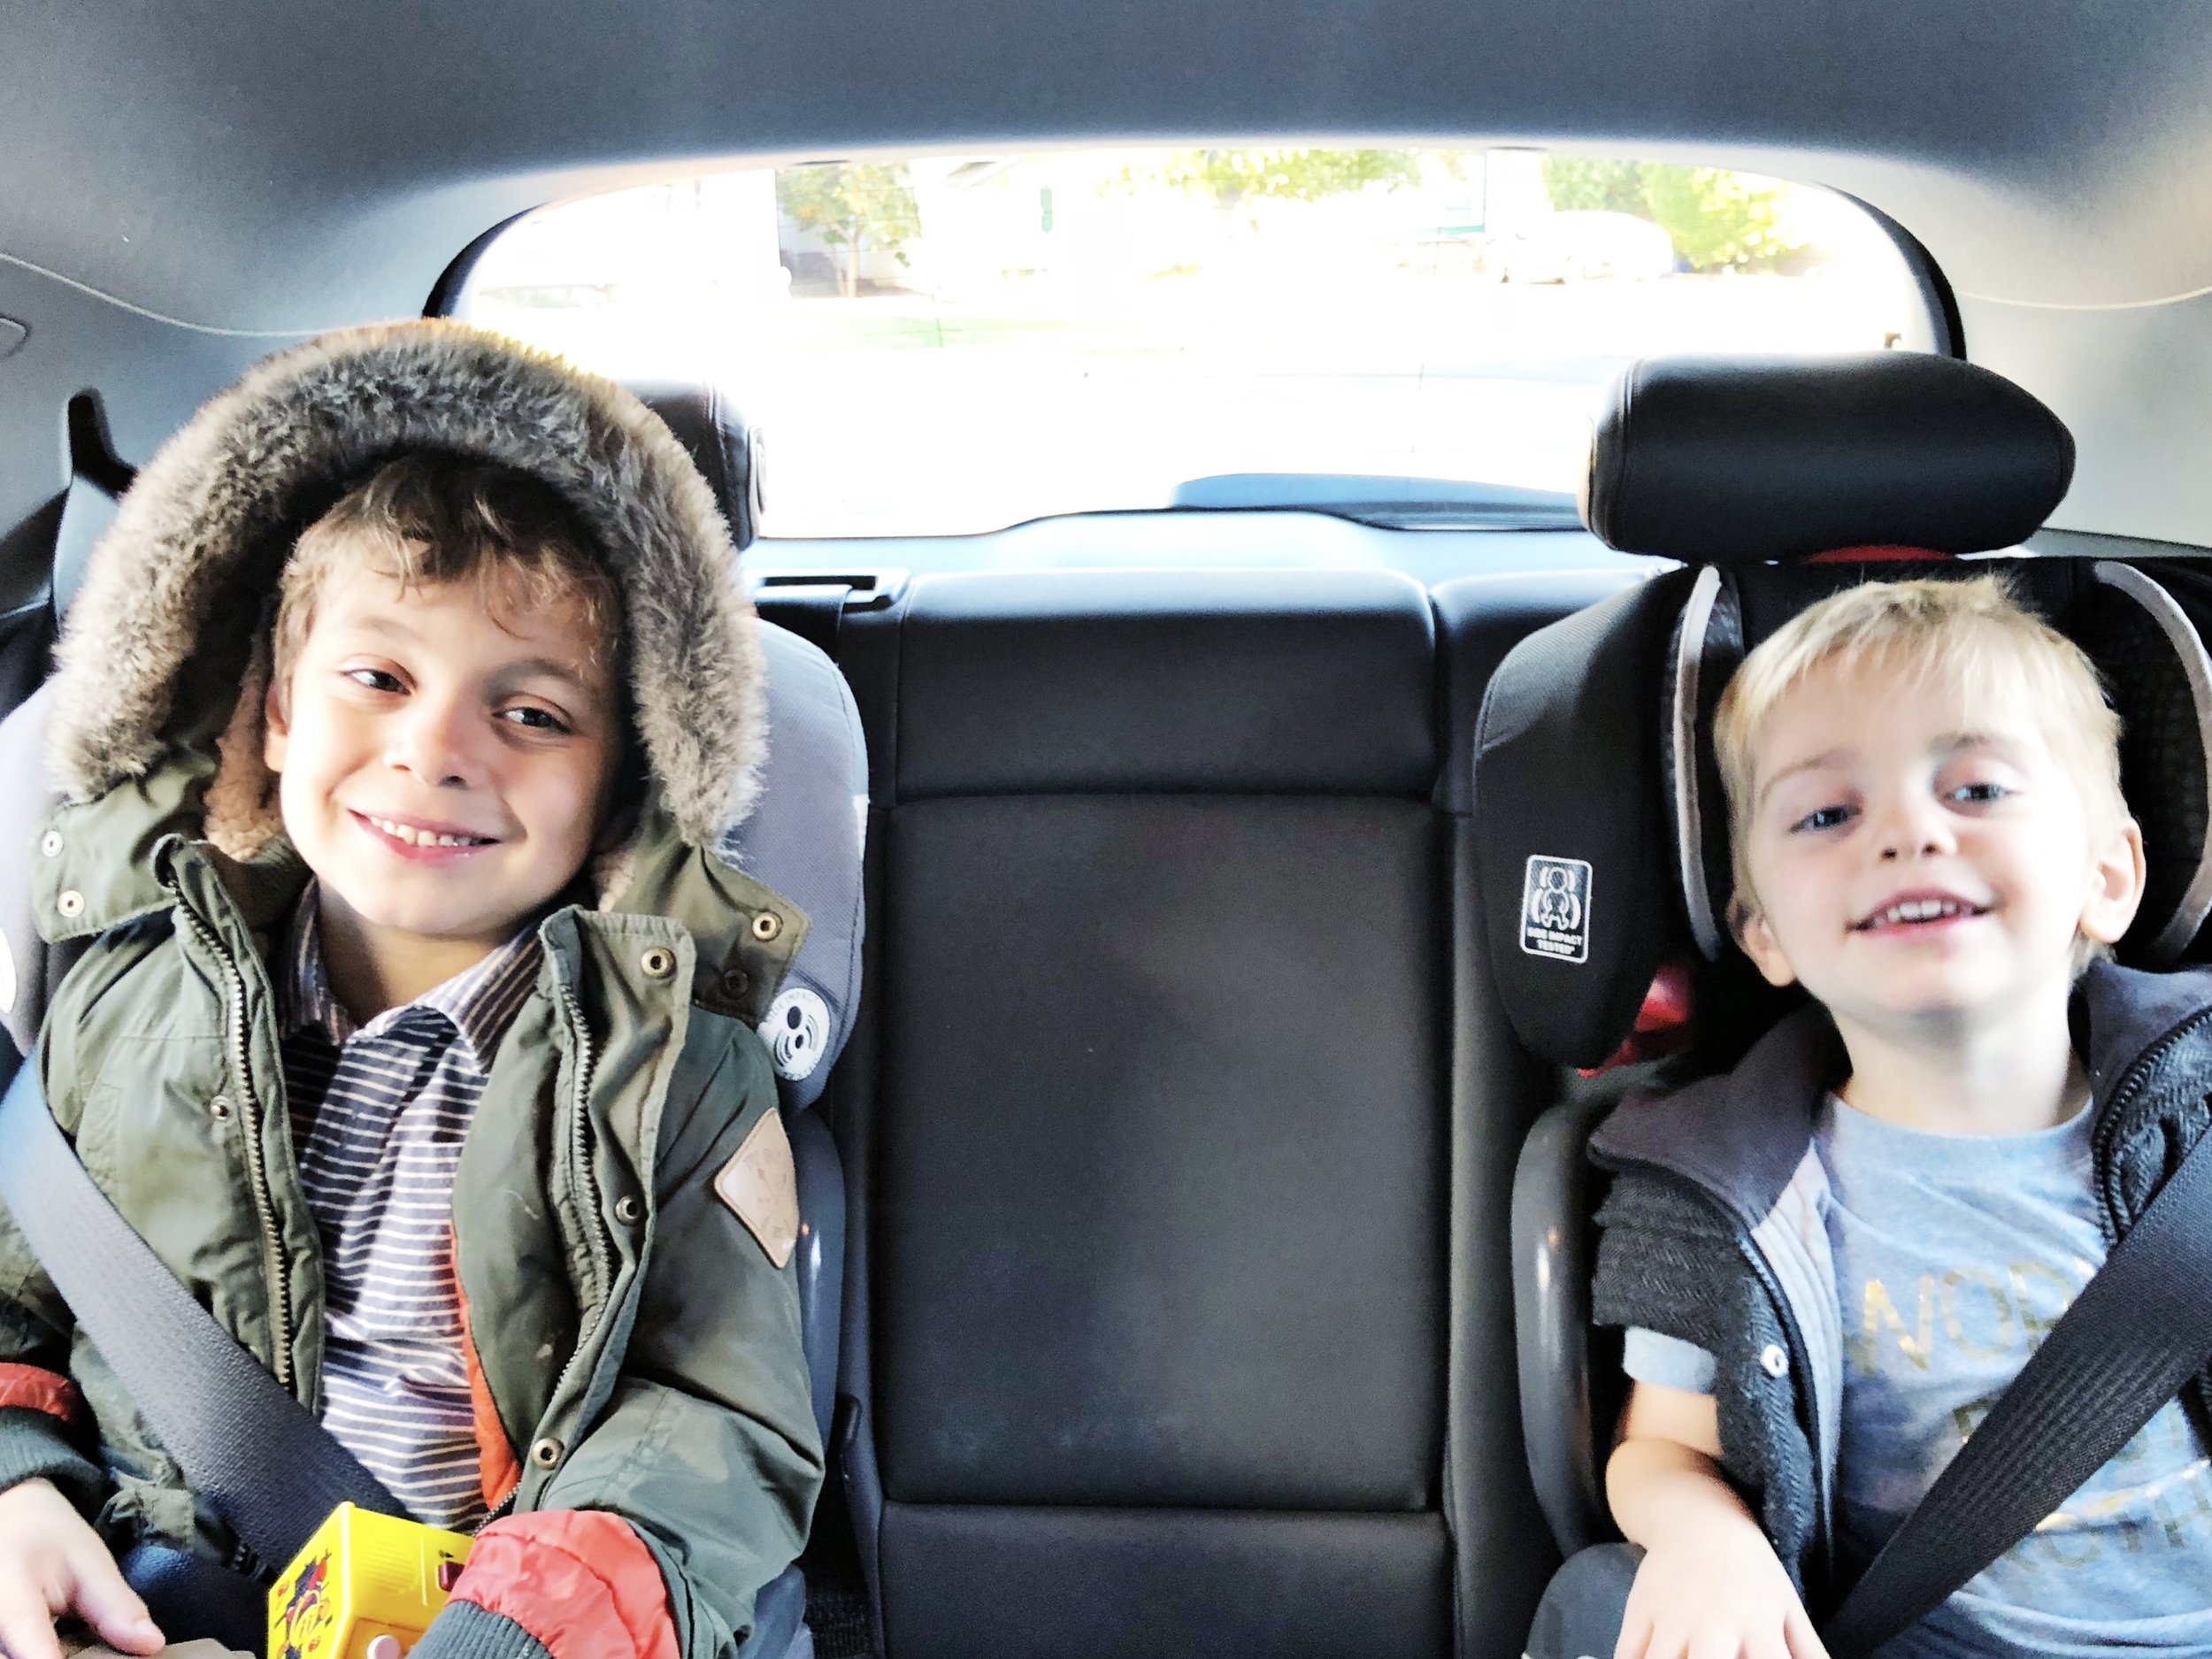 My boys were happy and confortable in the Chevy Bolt EV!